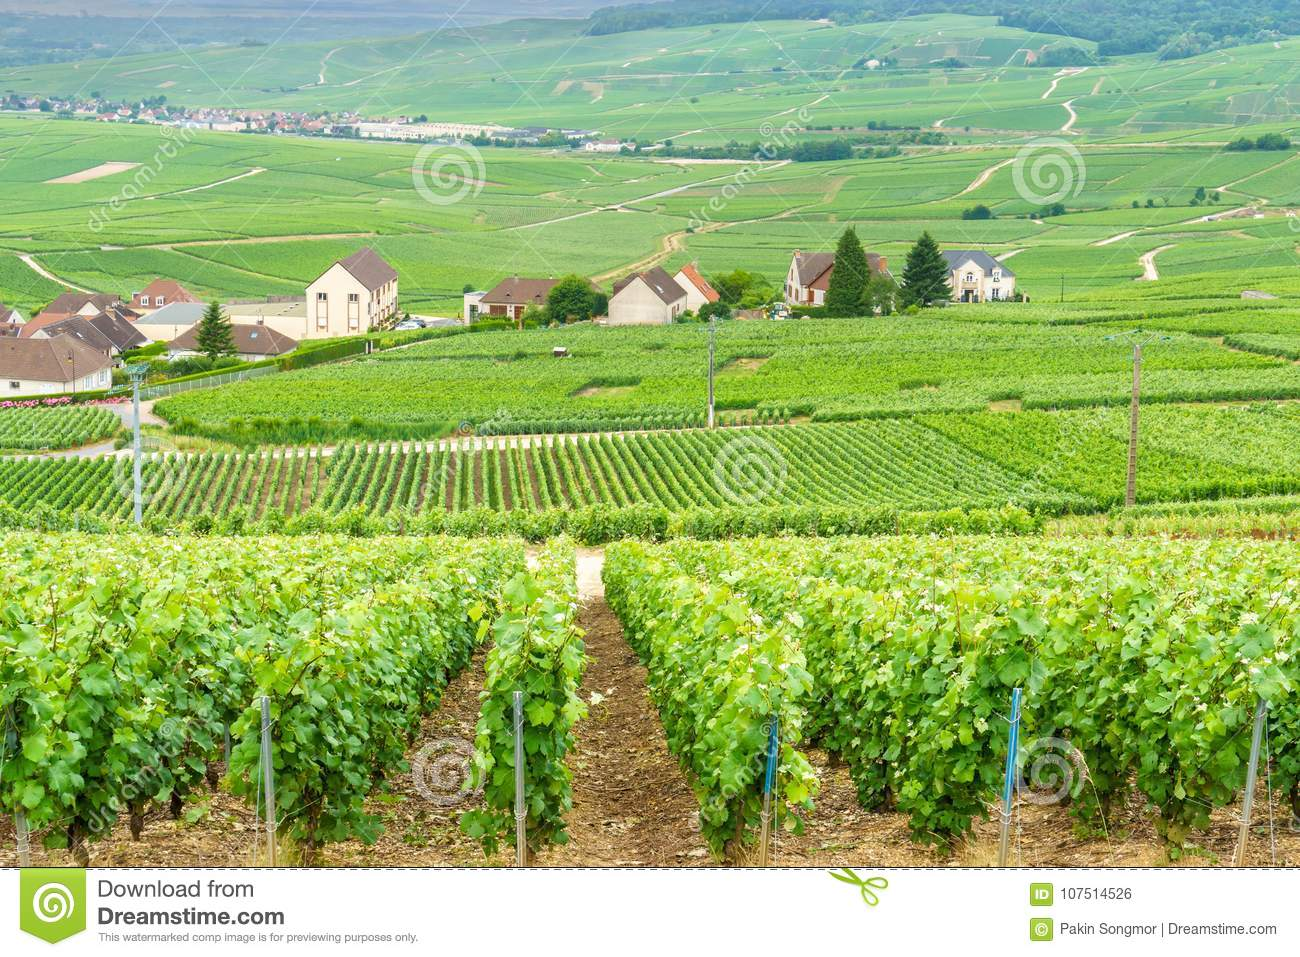 Scenic landscape in the Champagne, Vineyards in the Montagne de Reims